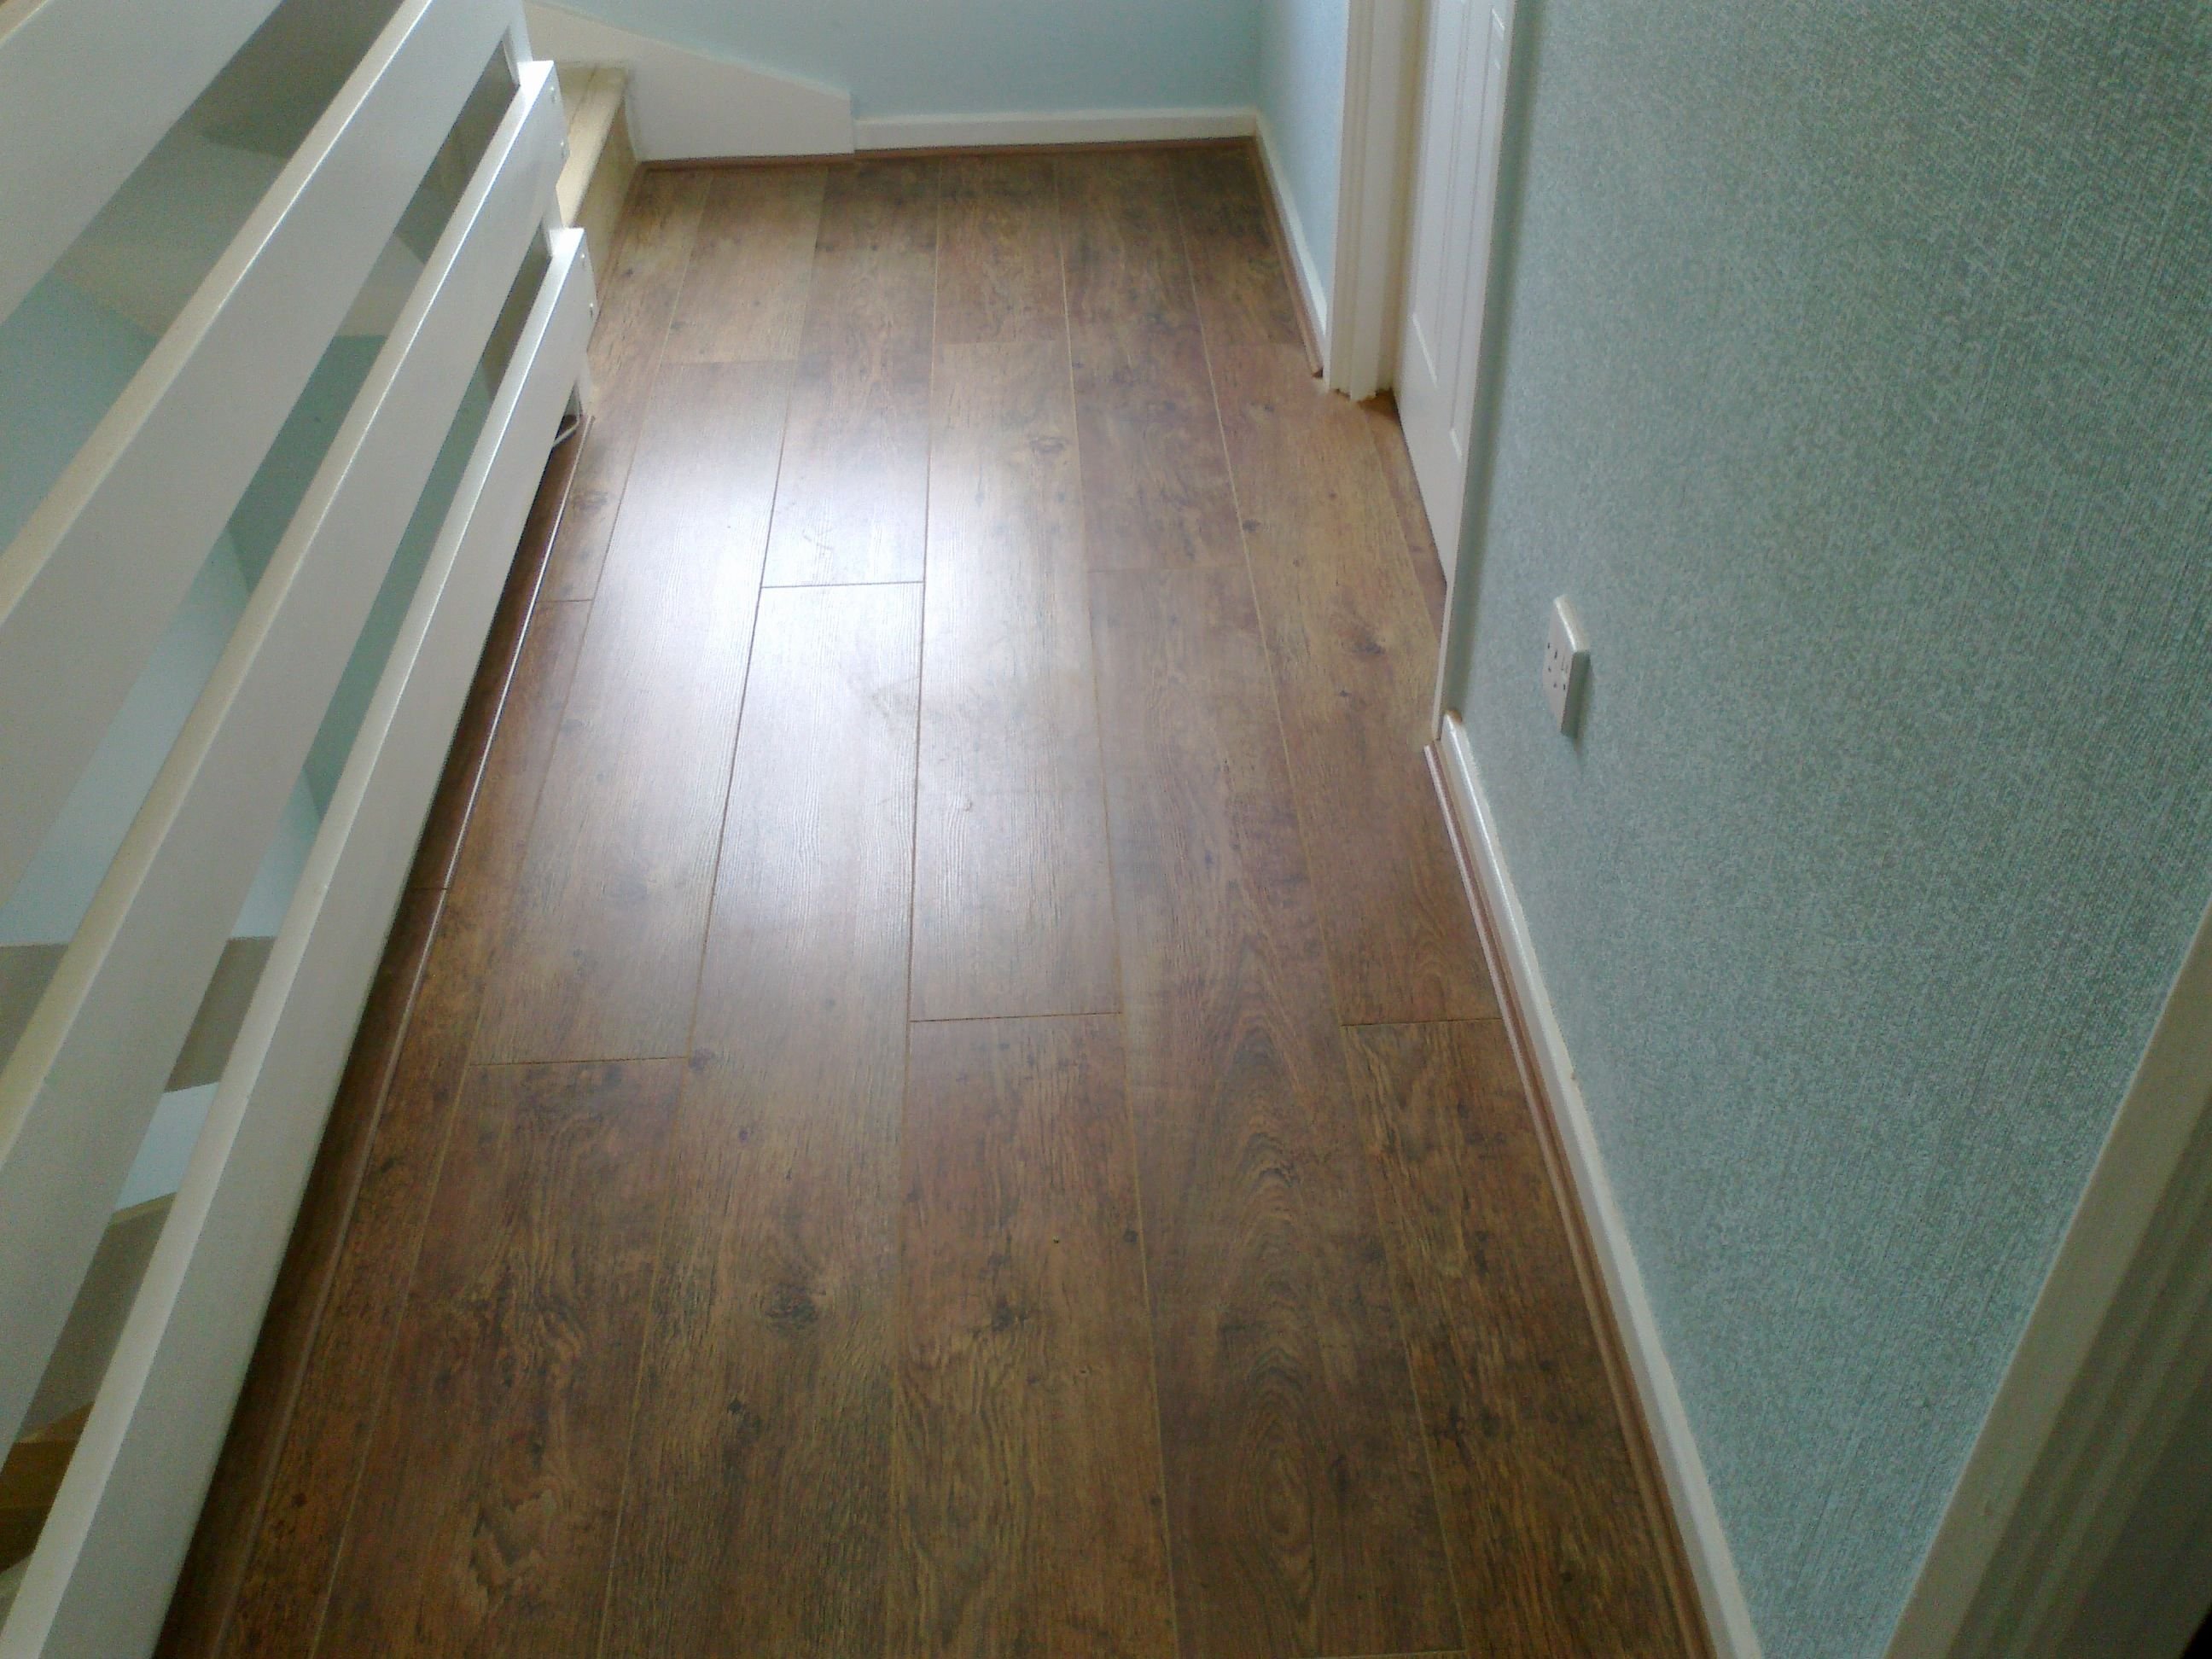 Floor Laminate Flooring Exactly how To Select The Right